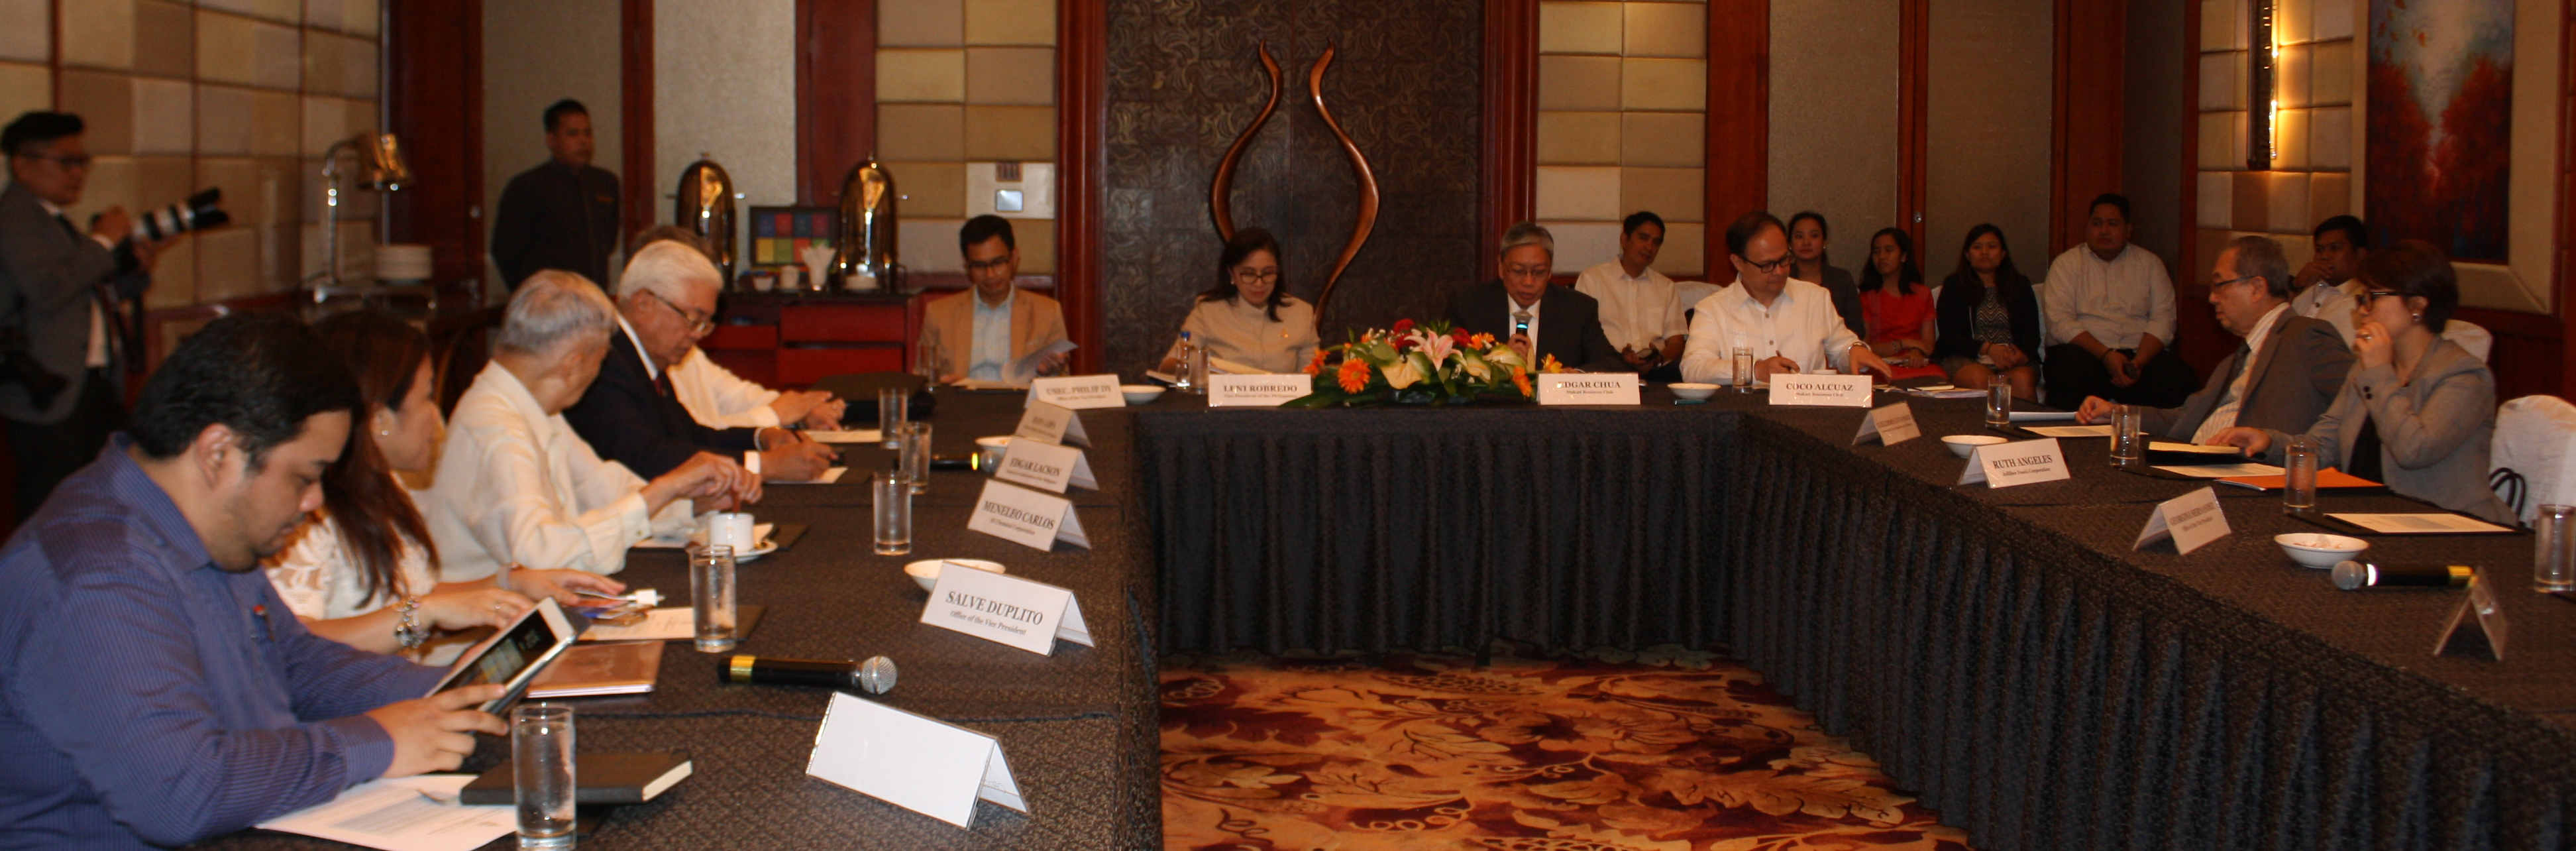 MBC holds a Roundtable Meeting with Vice President Leni Robredo on Labor Trends and Issues